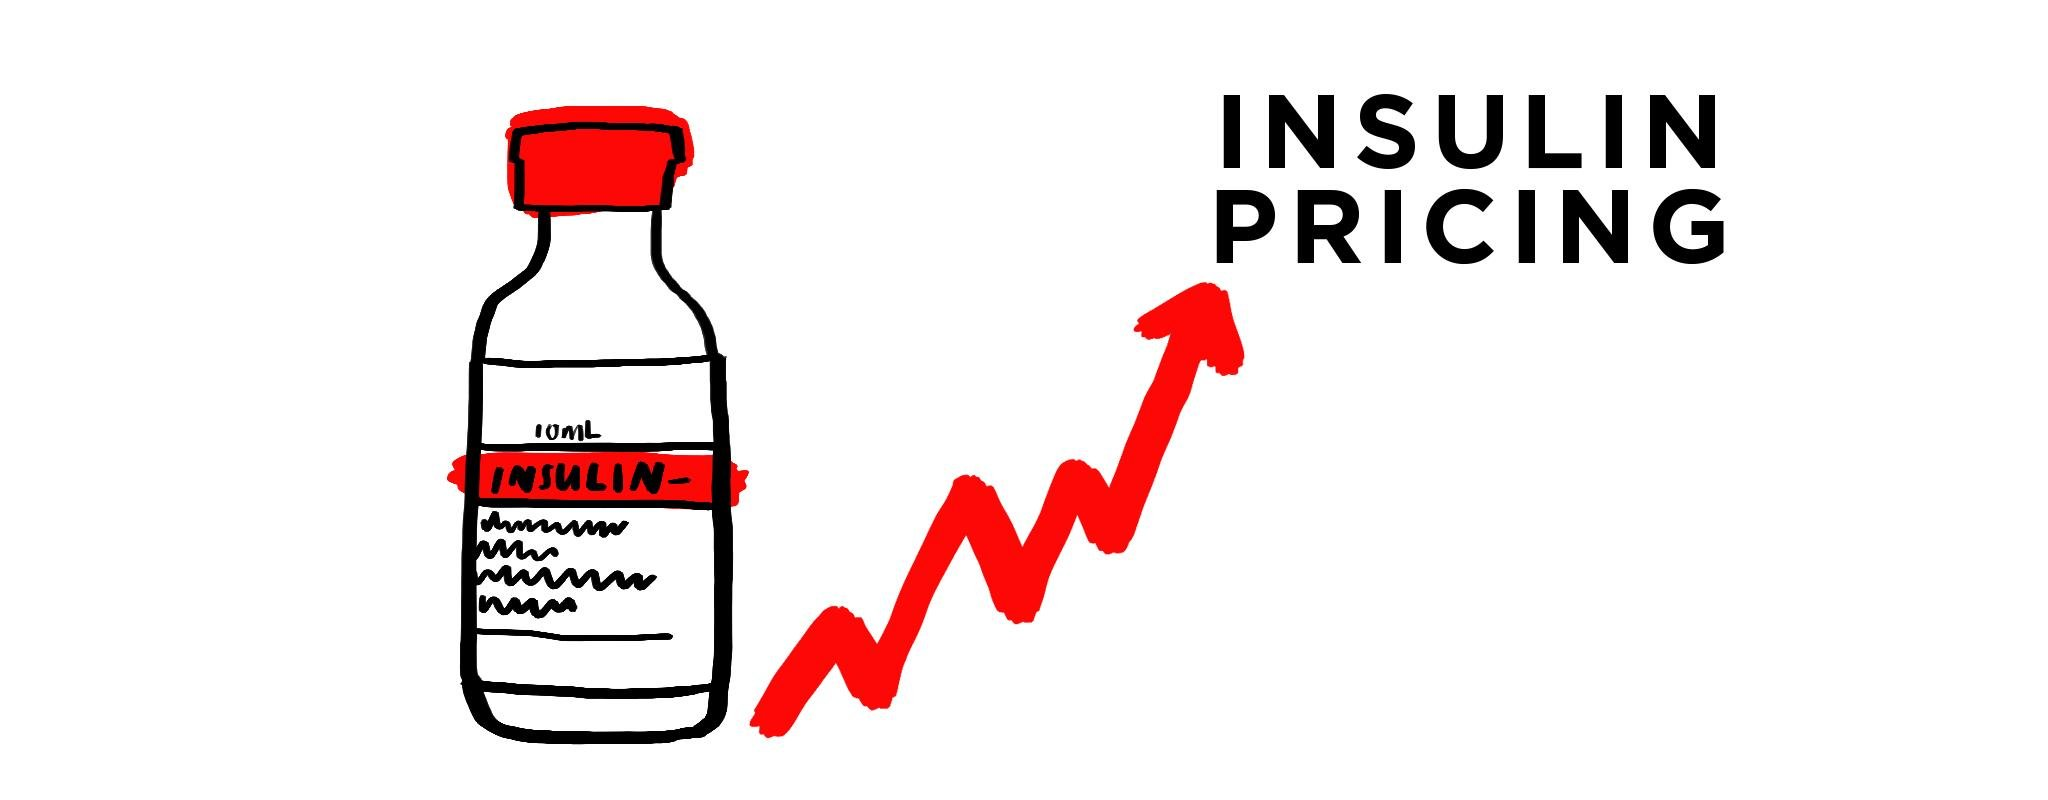 Cost Of Type 1 Diabetes Medication